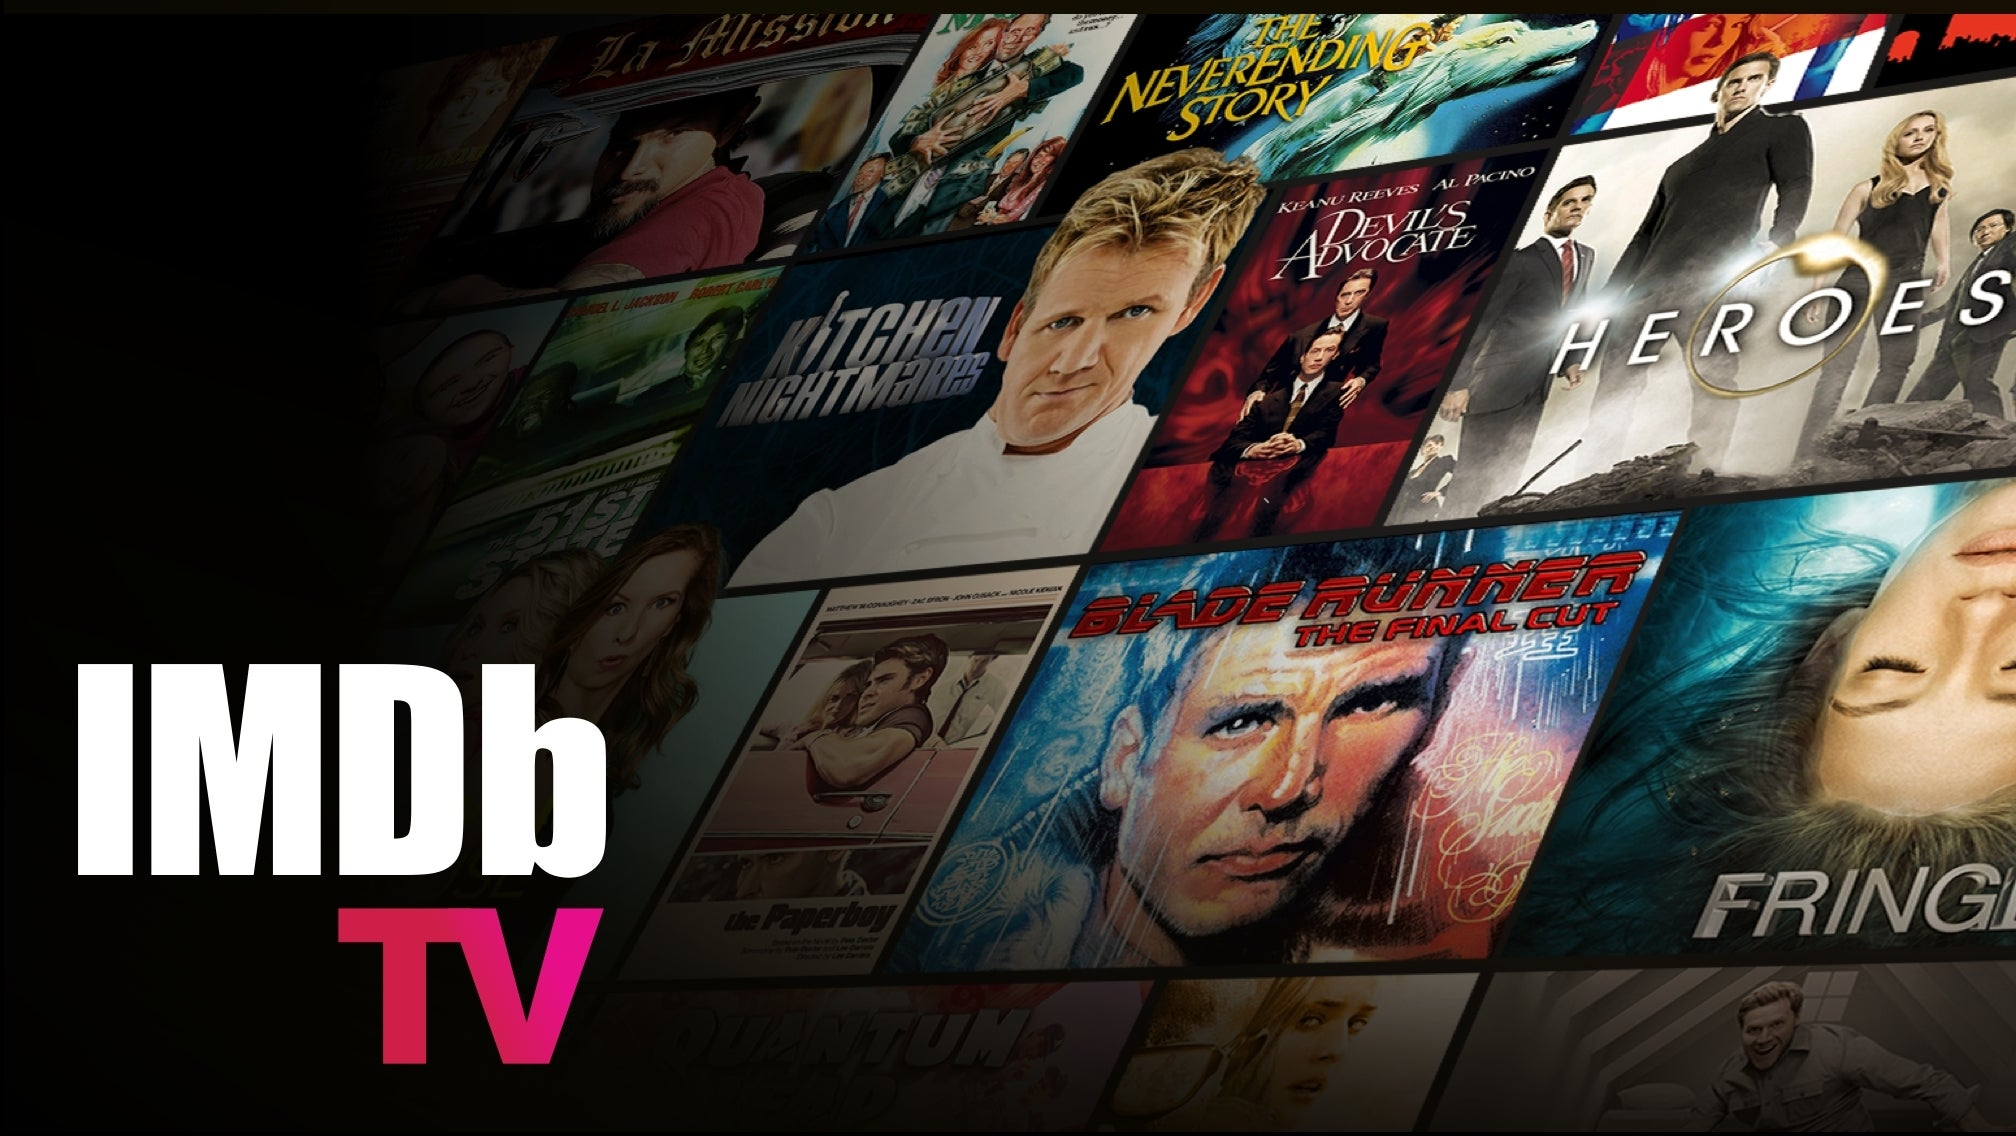 Artwork from various movies and television series with the IMDb TV logo overlaid.